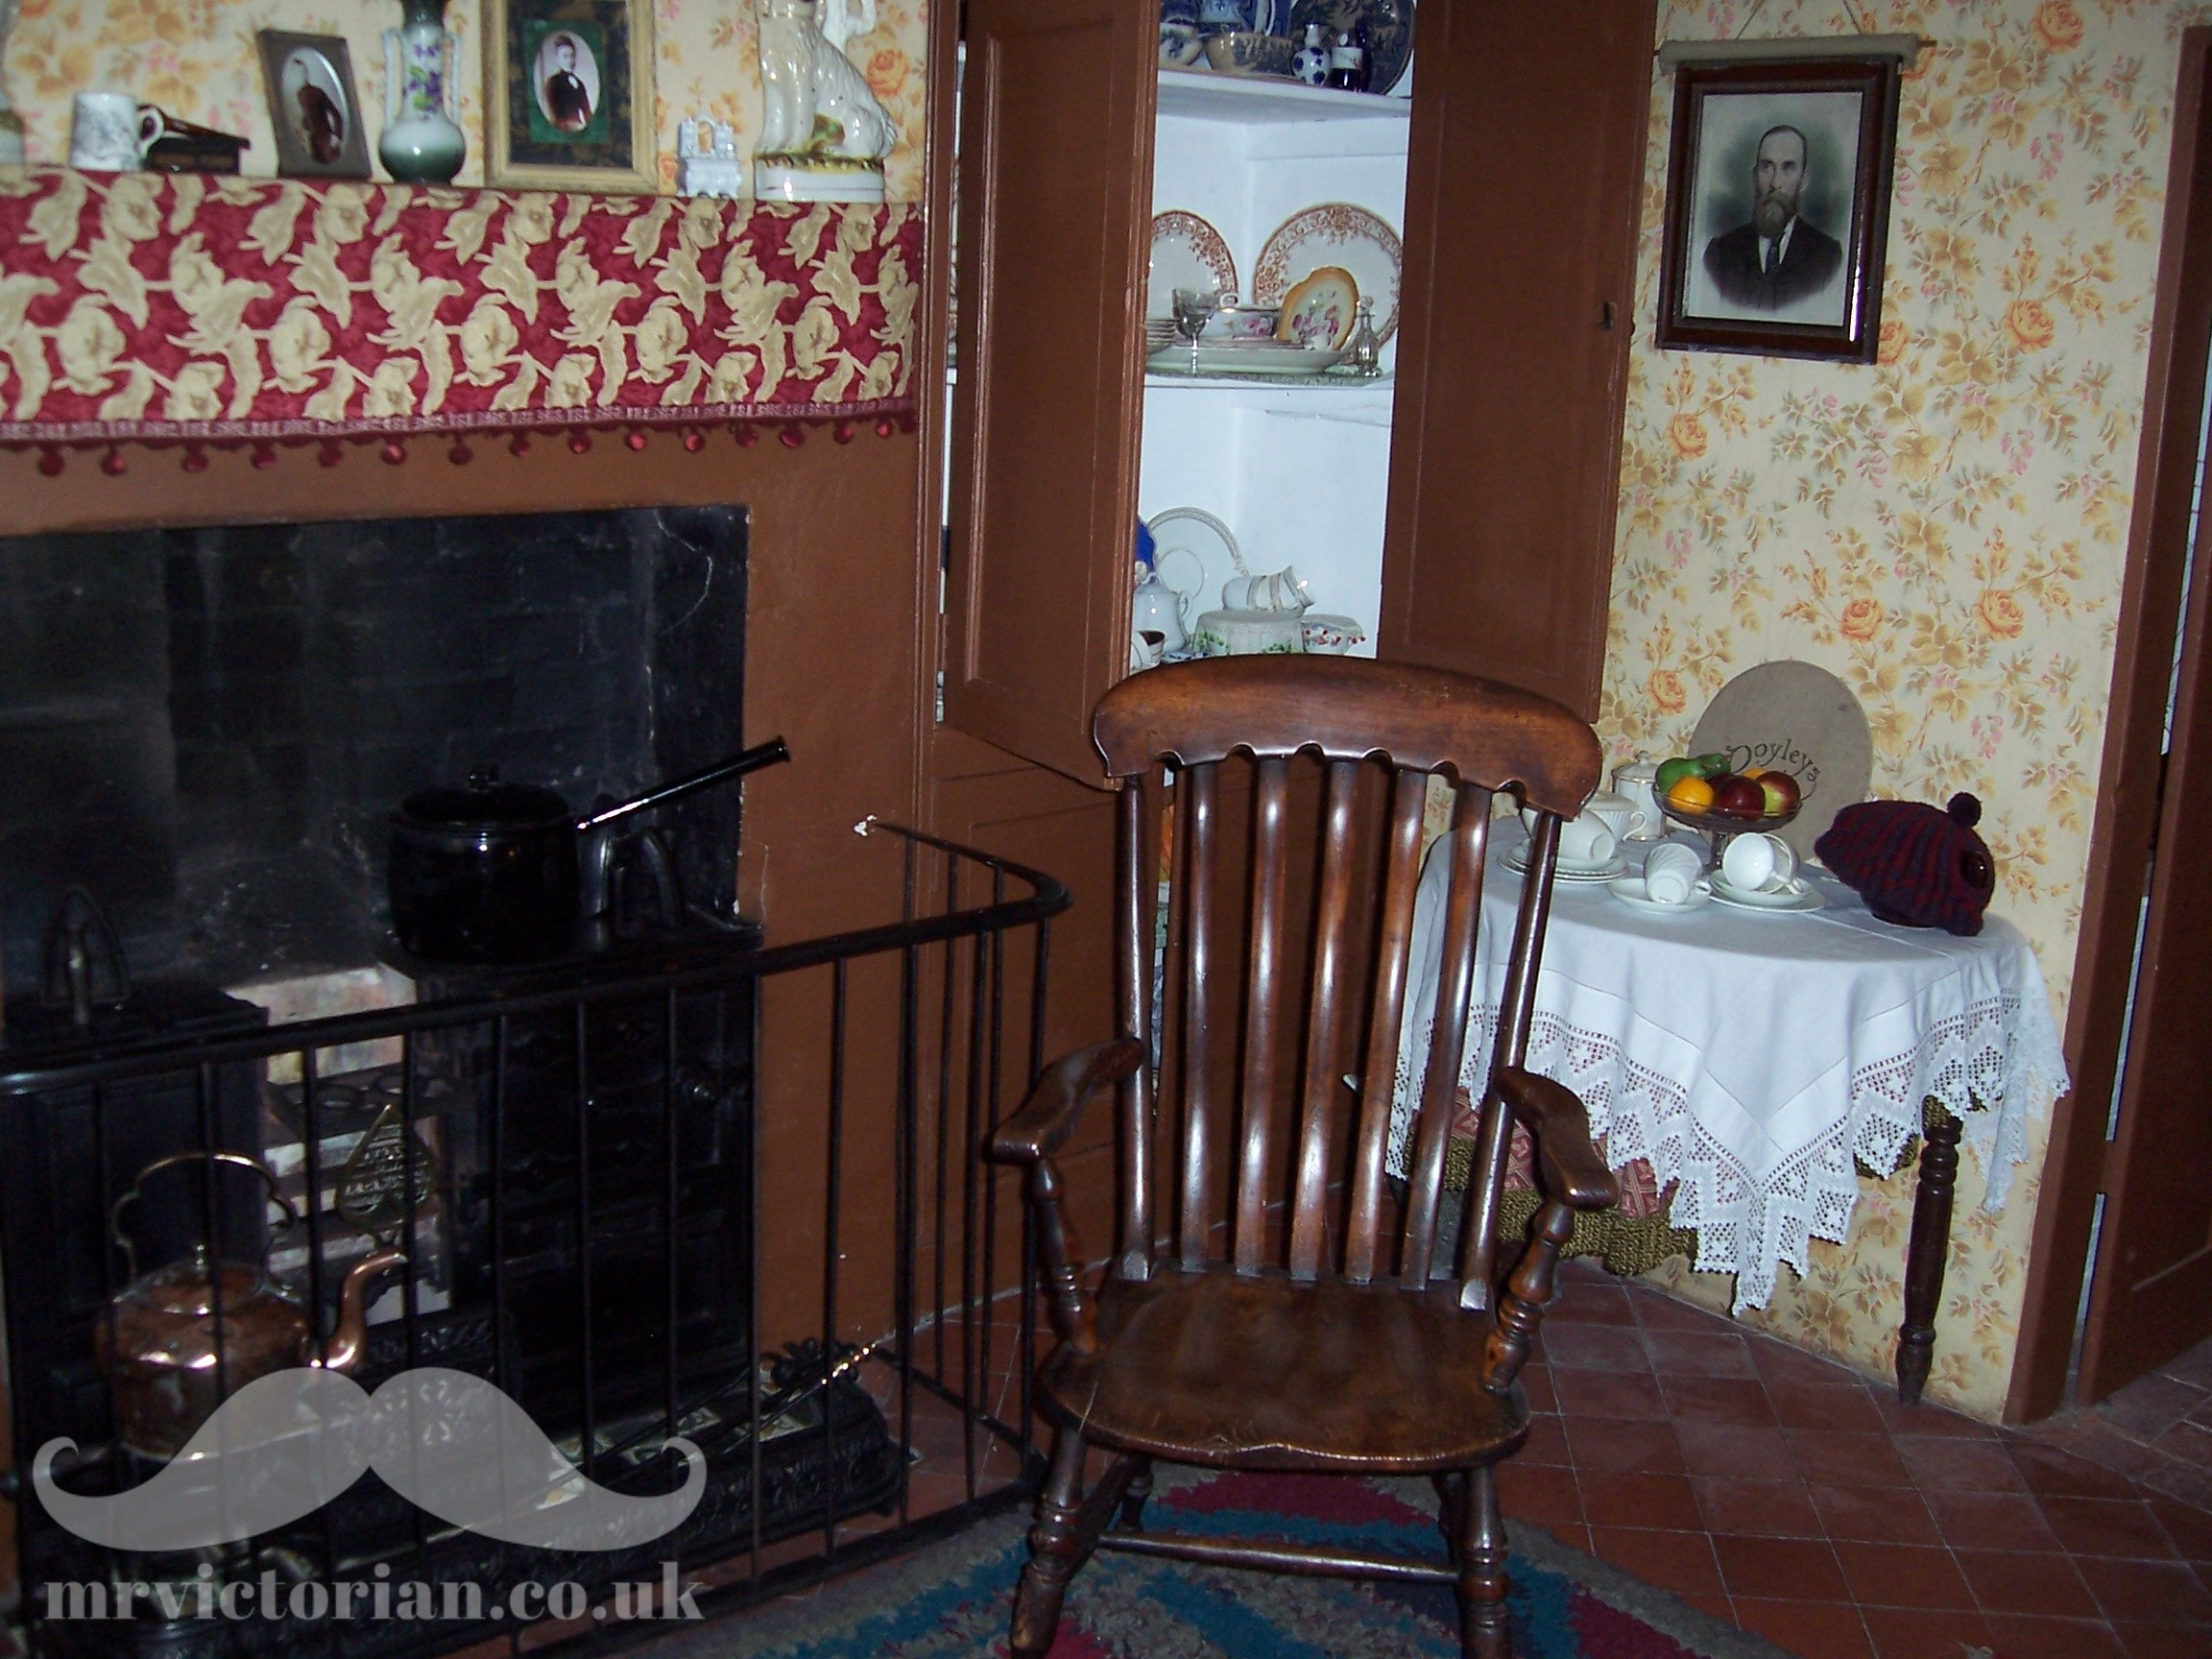 Top ten Victorian interiors Ruddington Framework Knitters Museum Cottage range kitchen quarry tiles